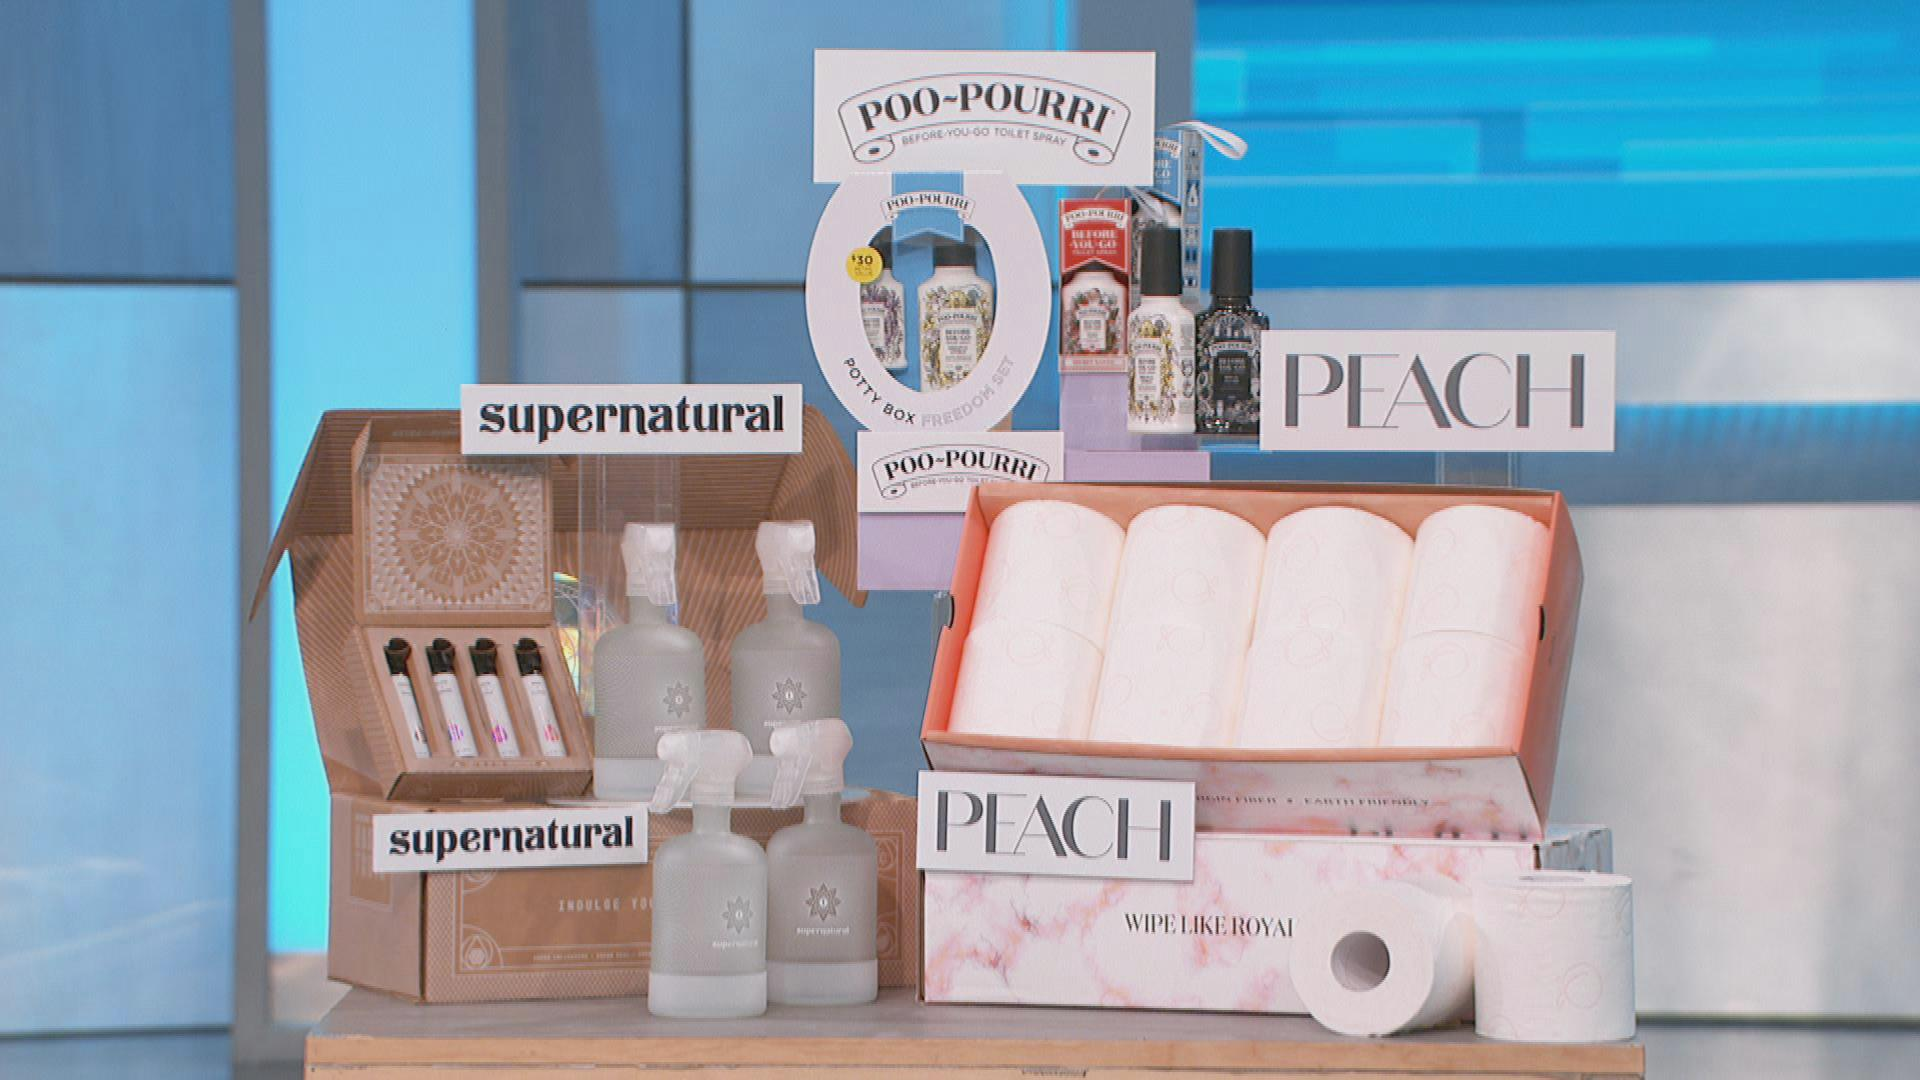 Peach goods, poopourri and supernatural bundle